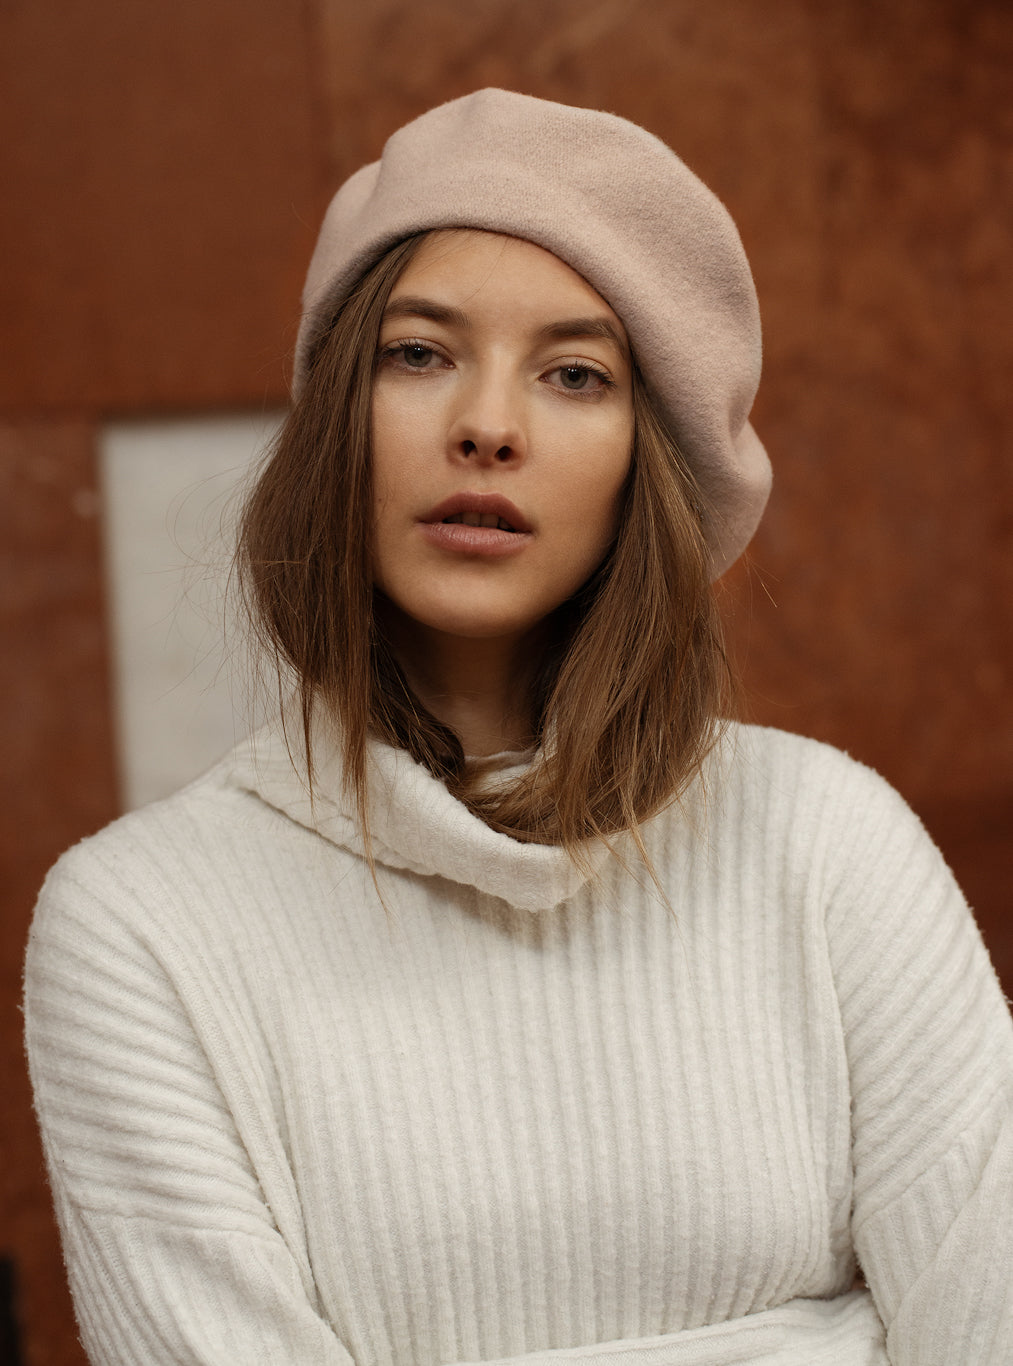 TAU Paris beige beret hat best quality pure wool gyapjú barett designed in Budapest womanswear accessory winter chic look with lion pin lookbook picture